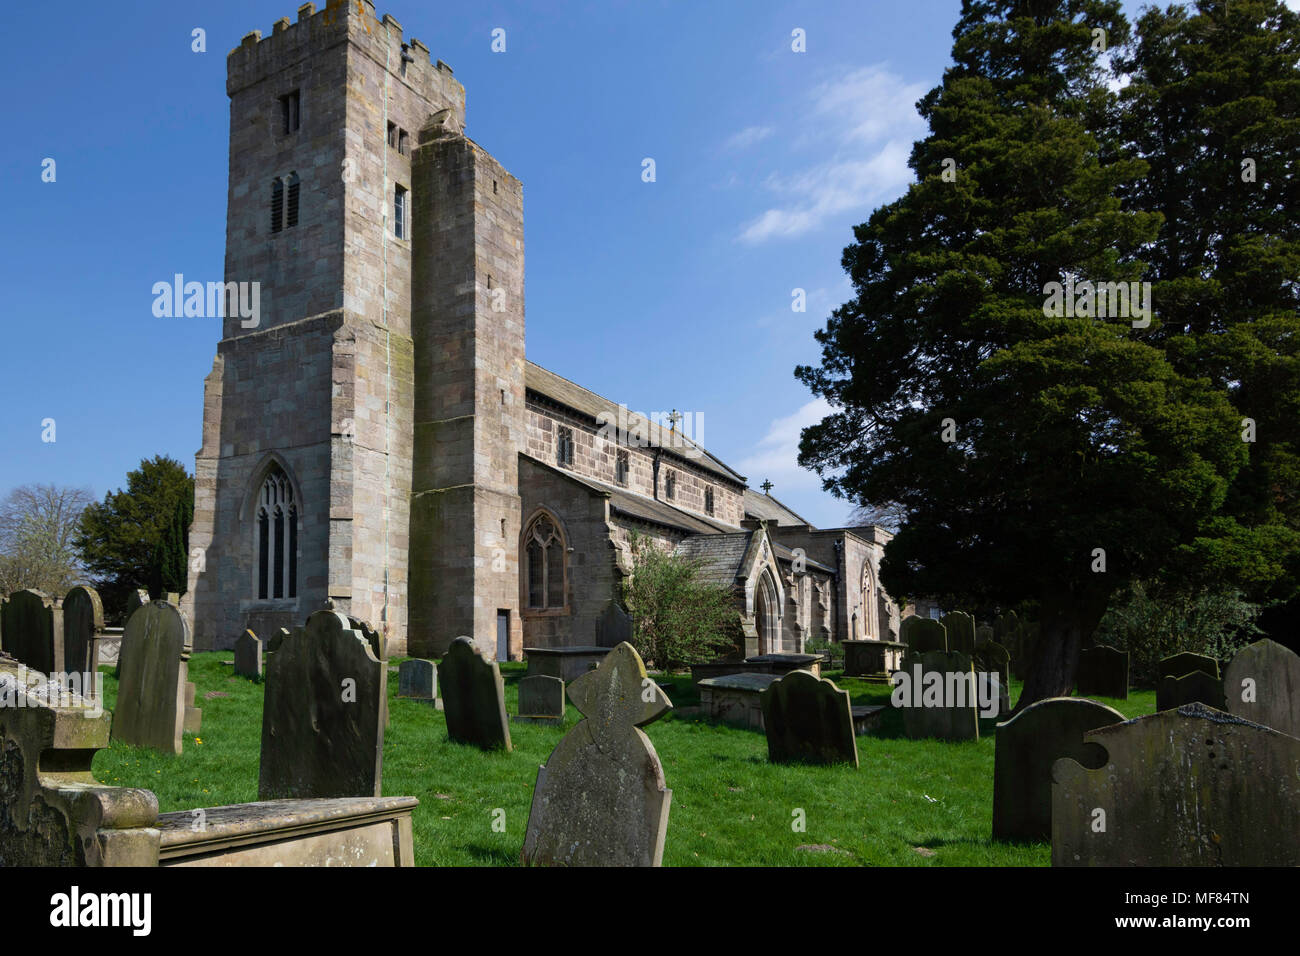 All Saints Church et pierres tombales,Ripley,North Yorkshire, Angleterre, Royaume-Uni. Photo Stock